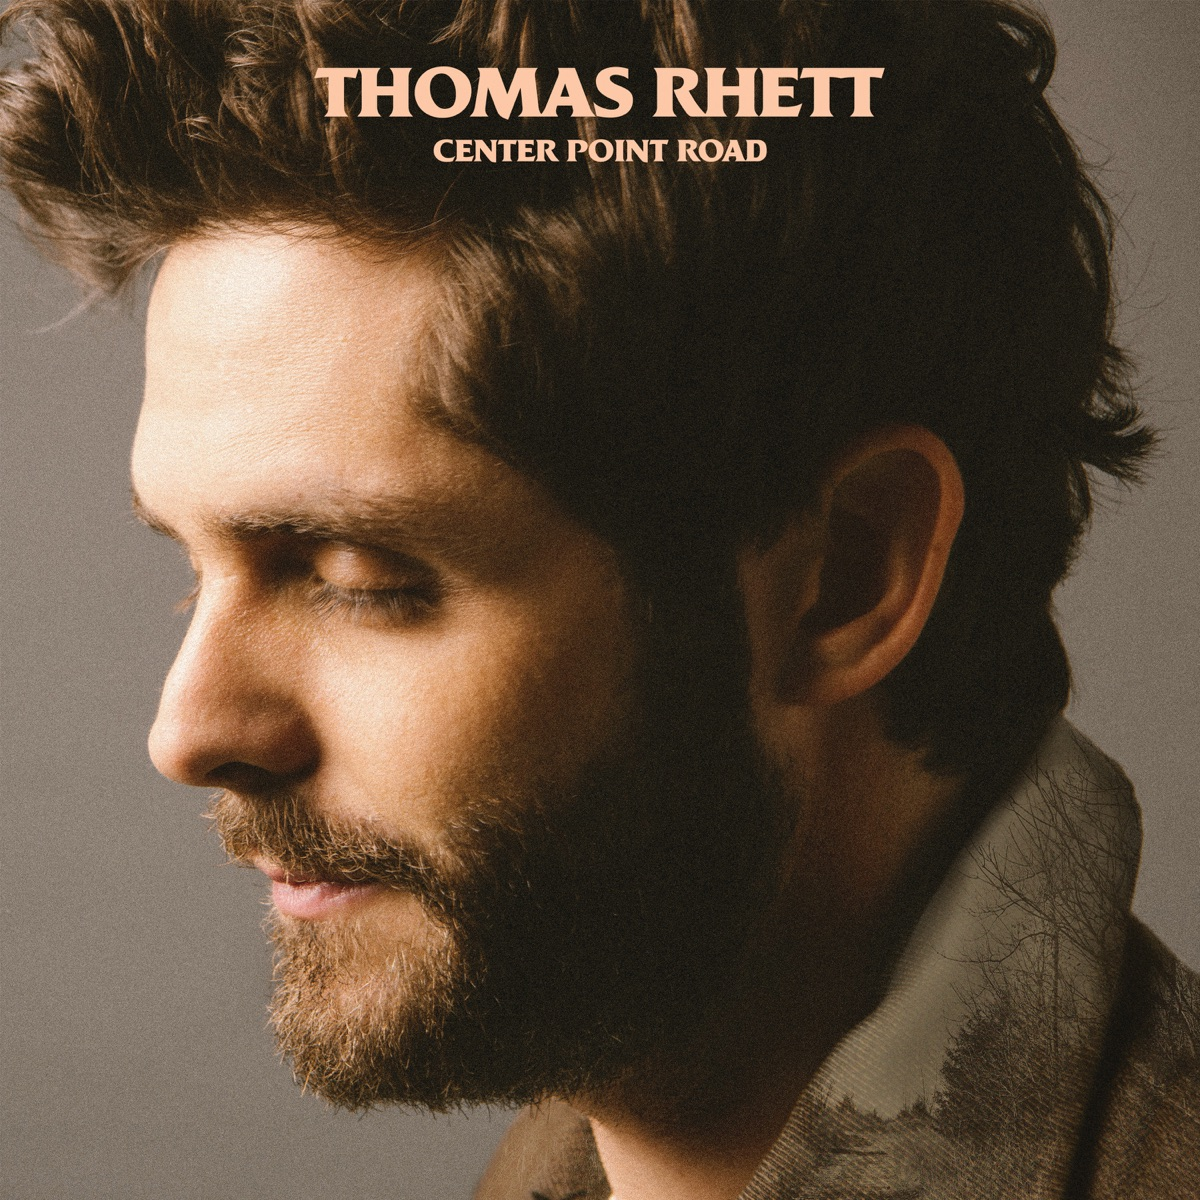 Center Point Road Thomas Rhett CD cover